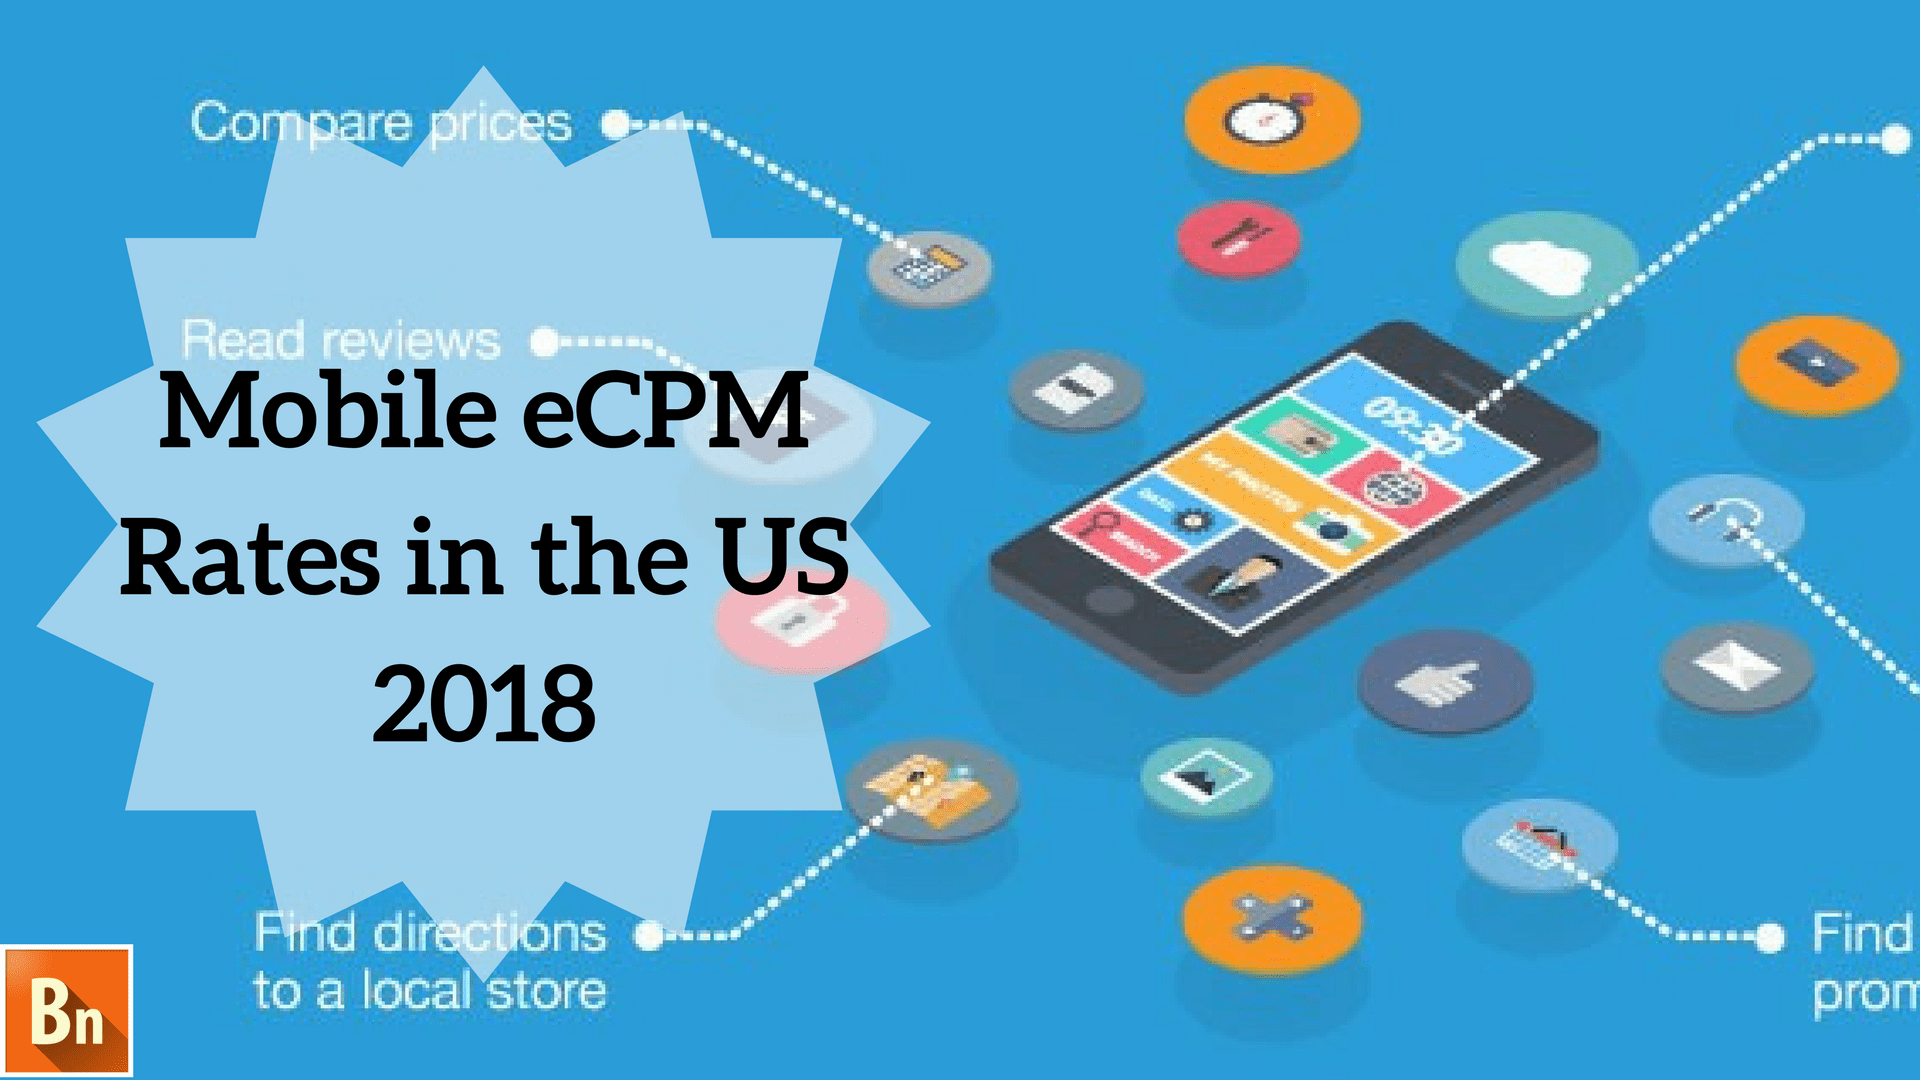 Mobile eCPM Rates in the US 2018